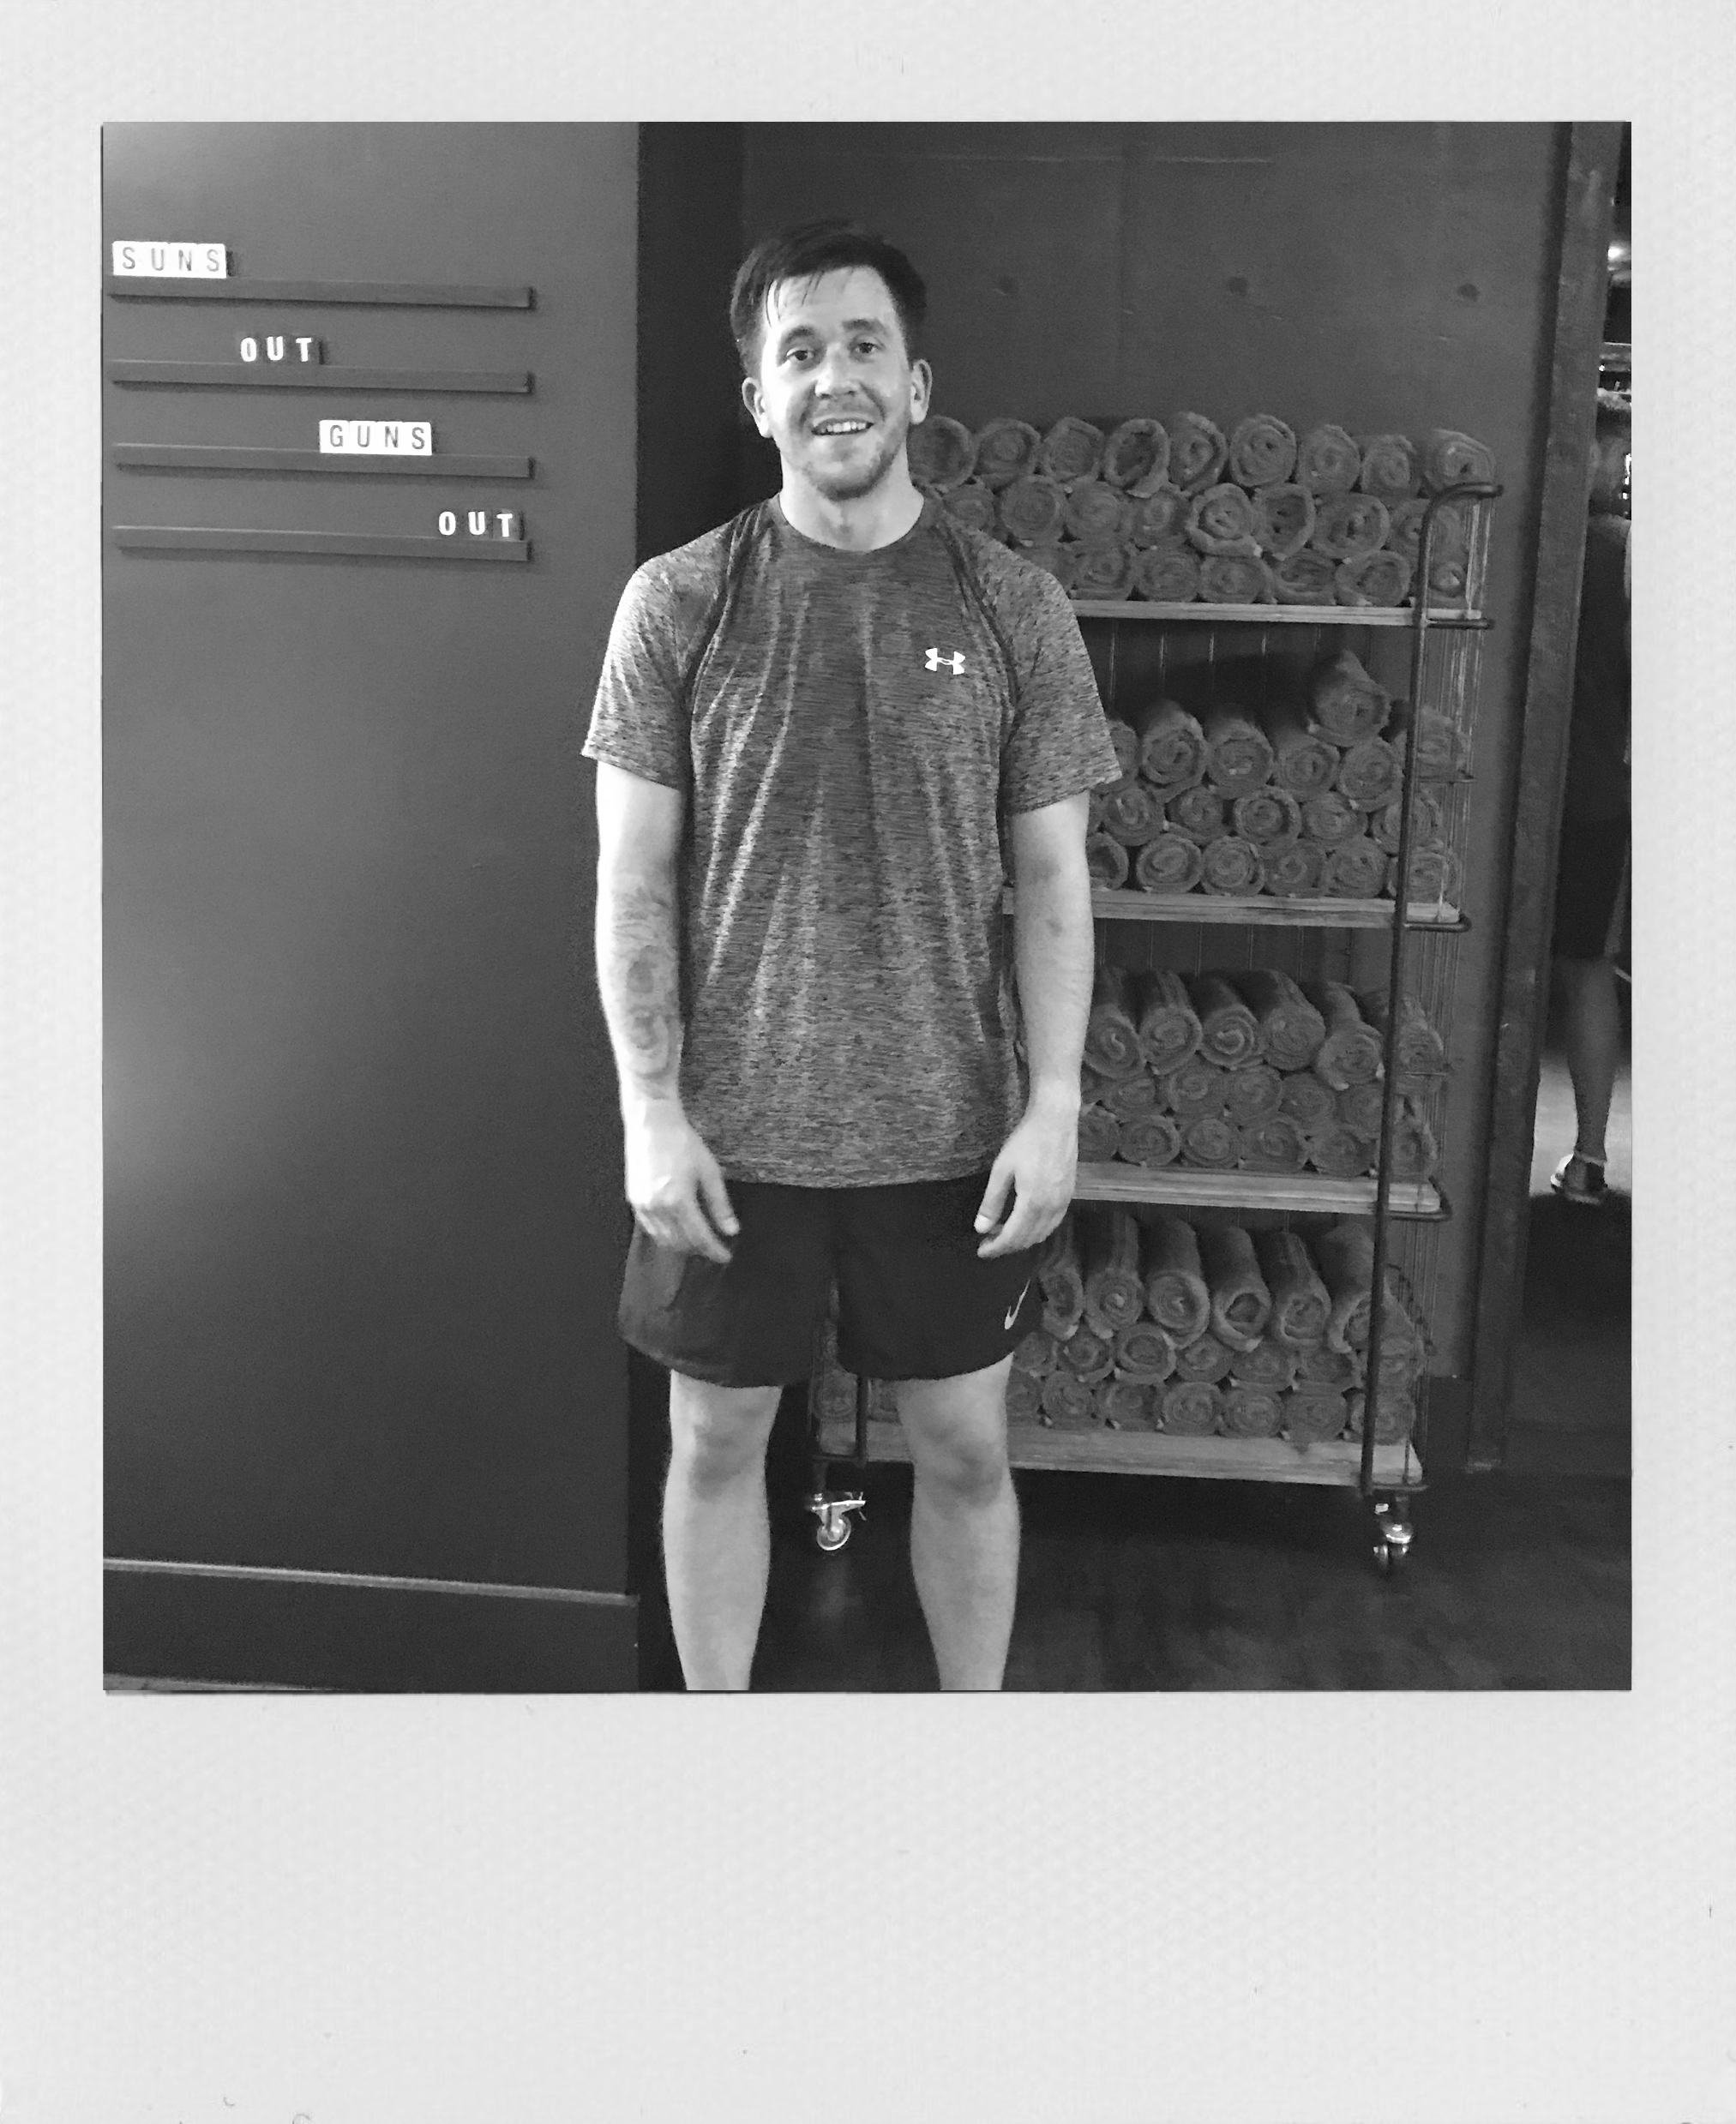 SQUAD SPOTLIGHT: TERRY - Meet Terry, one of the first dozen to hit the 25-Squad. YOU WILL FIND TERRY QUIETLY GRINDING AWAY ON SPOT 9 AT lunchtimeS AS HE TRAINS for a half marathon in October.